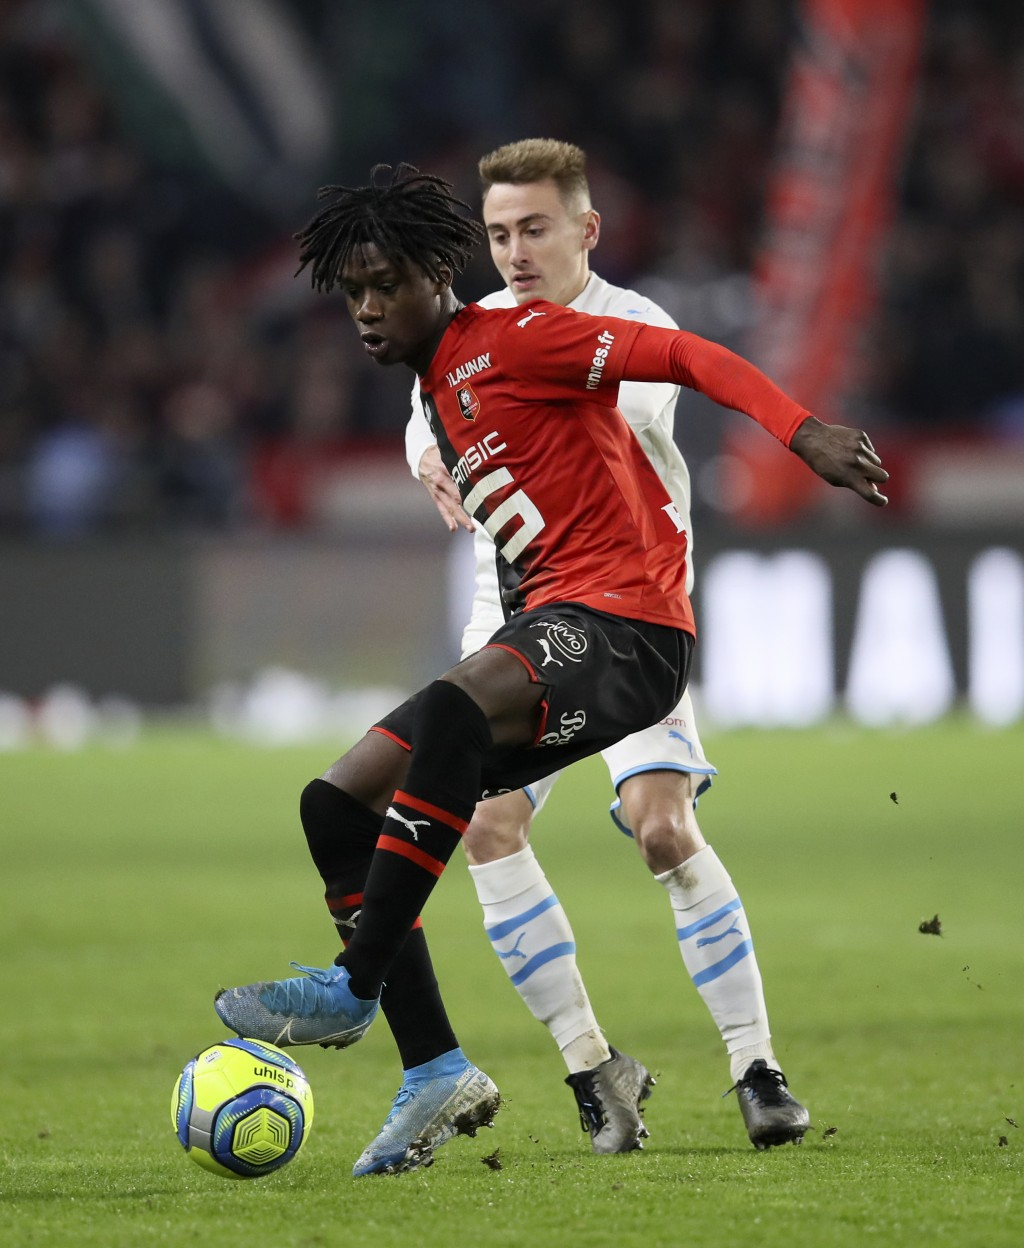 FILE - In this Friday, Jan. 10, 2020 file photo, Rennes' Eduardo Camavinga controls the ball during the League One soccer match between Rennes and Mar...